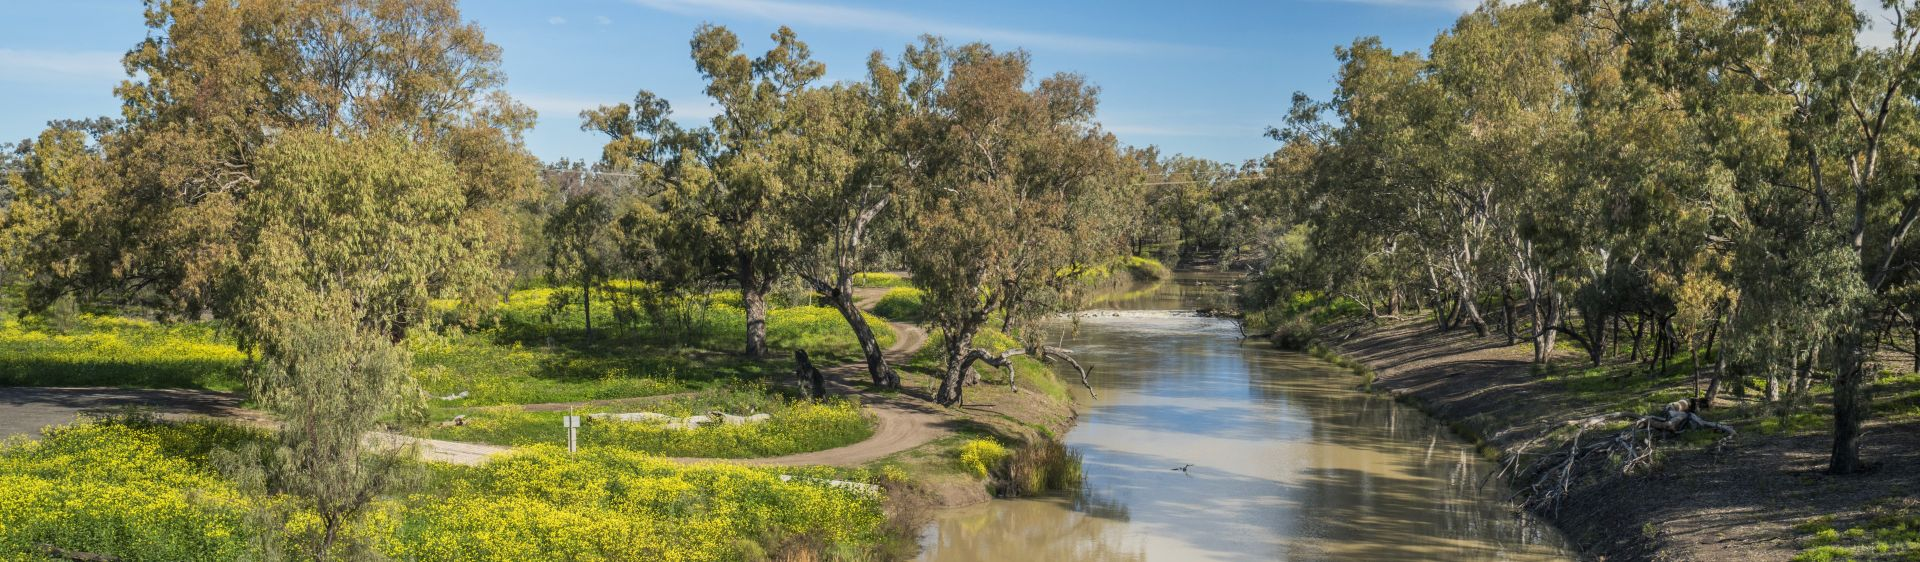 Walgett NSW - Plan a Holiday - Accommodation, Caravan Parks